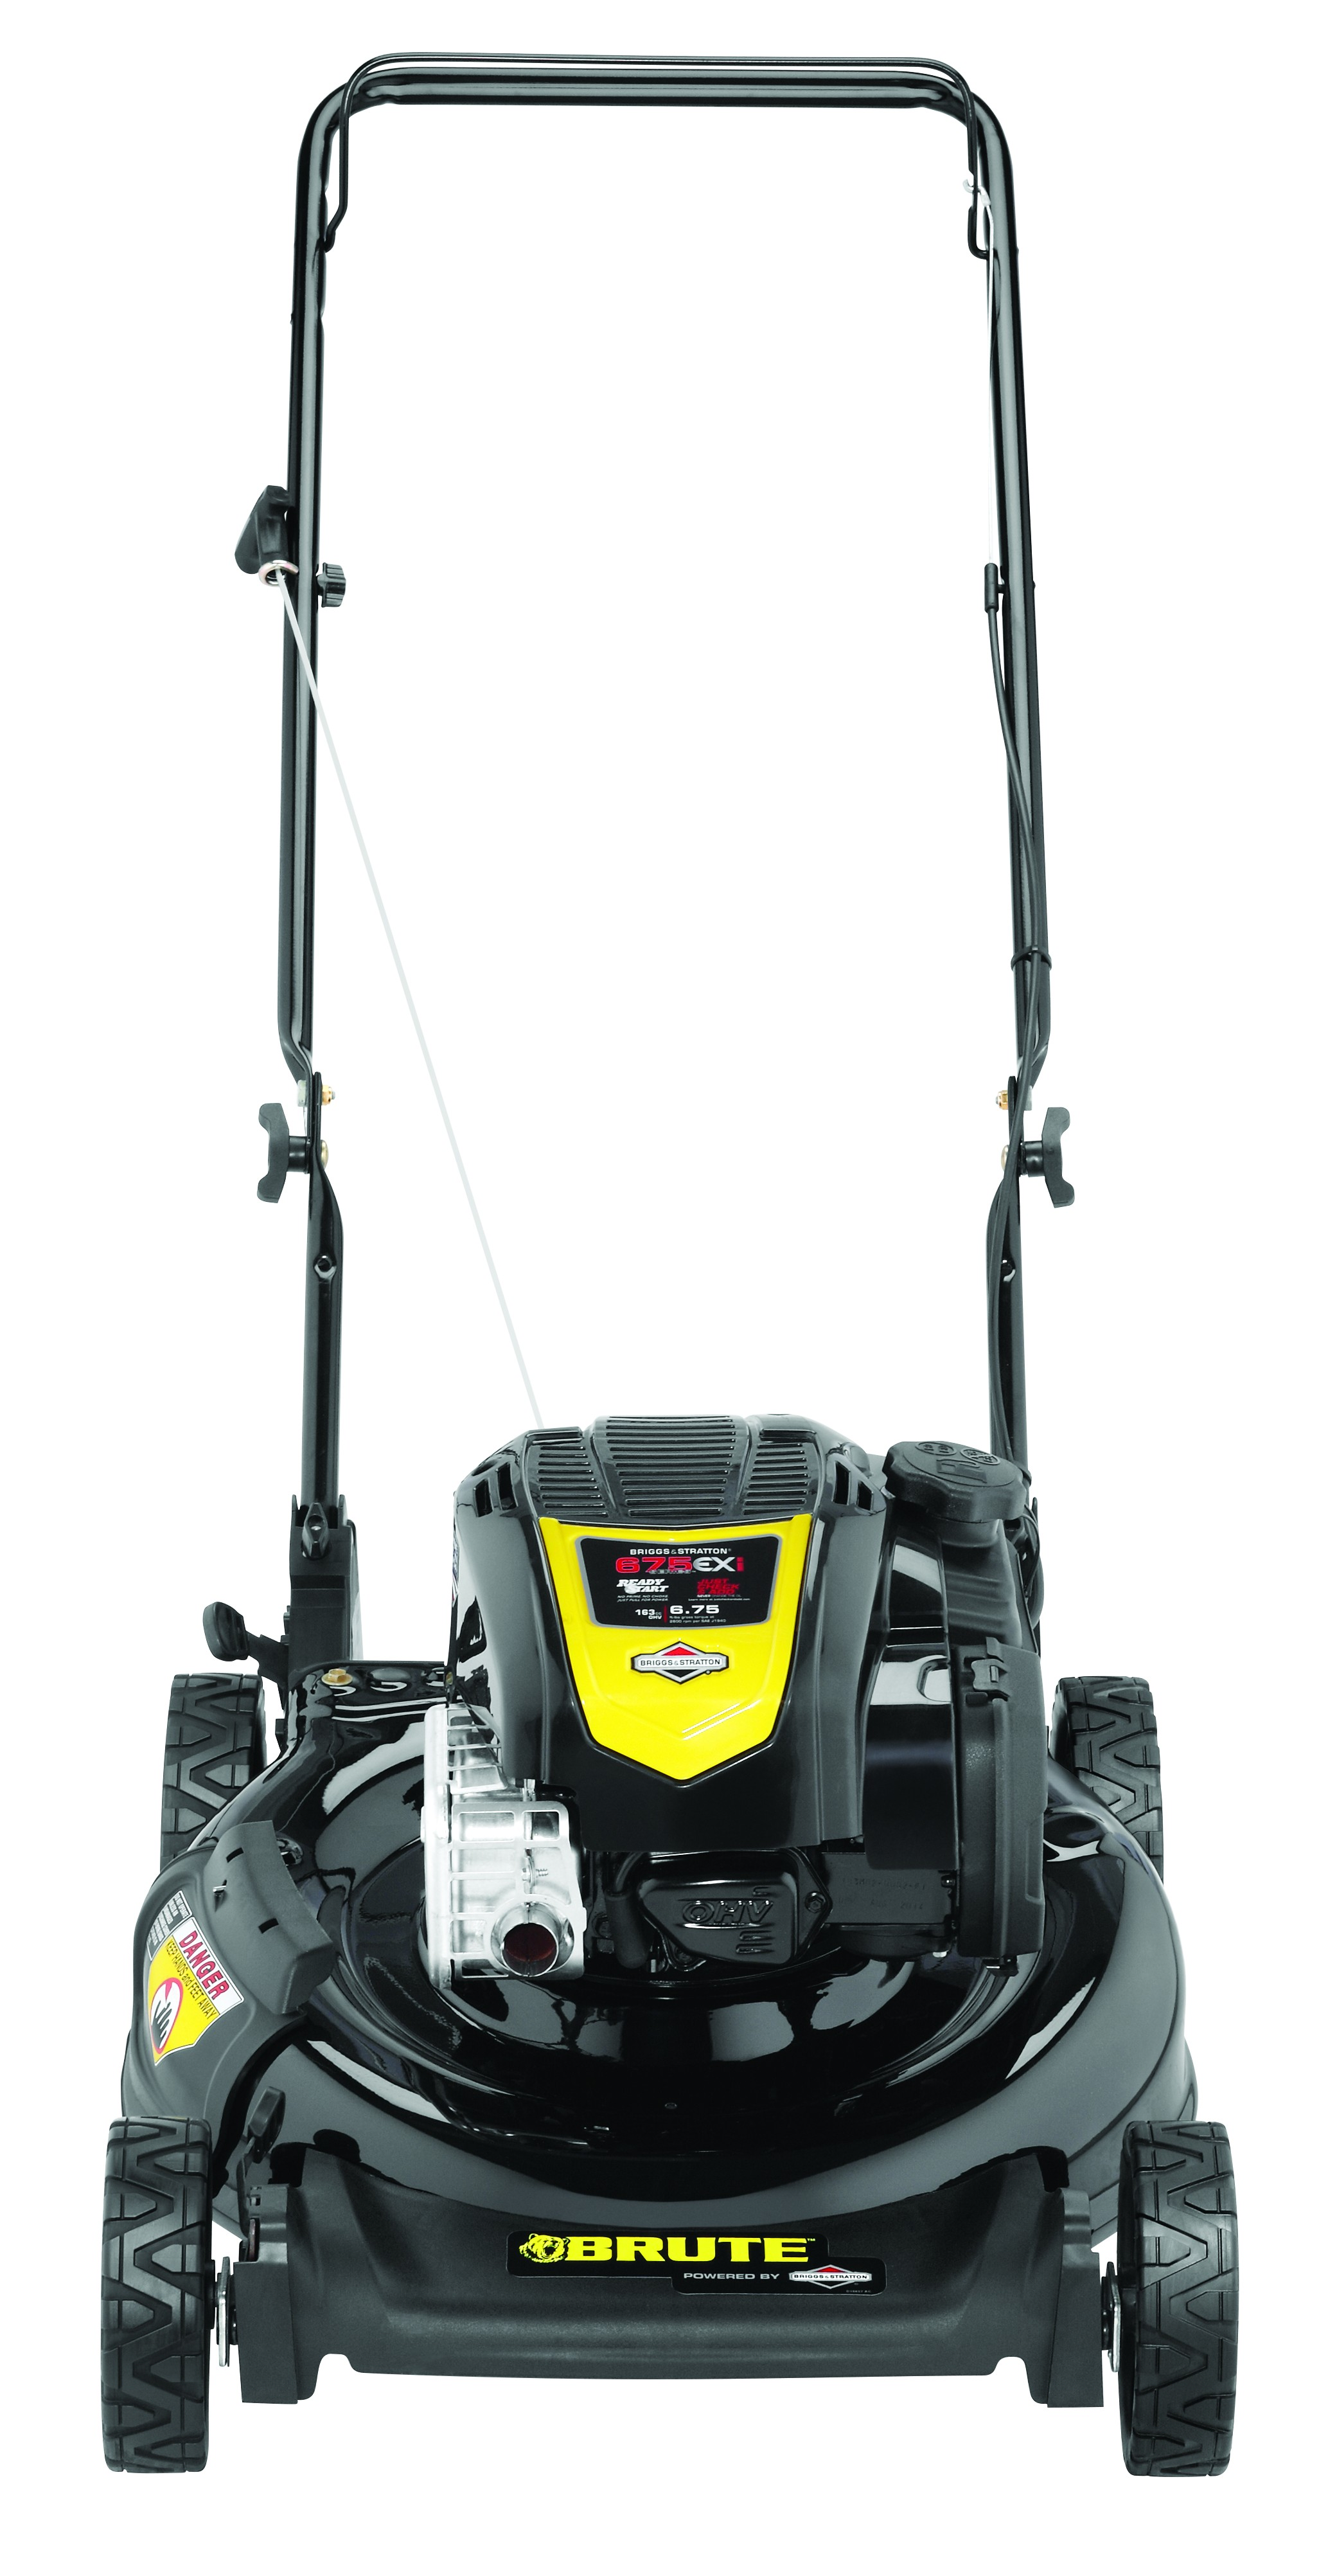 "21"" Brute Gas Push Lawn Mower with Briggs & Stratton 163cc Engine and Side Discharge, Mulching by MTD Products"